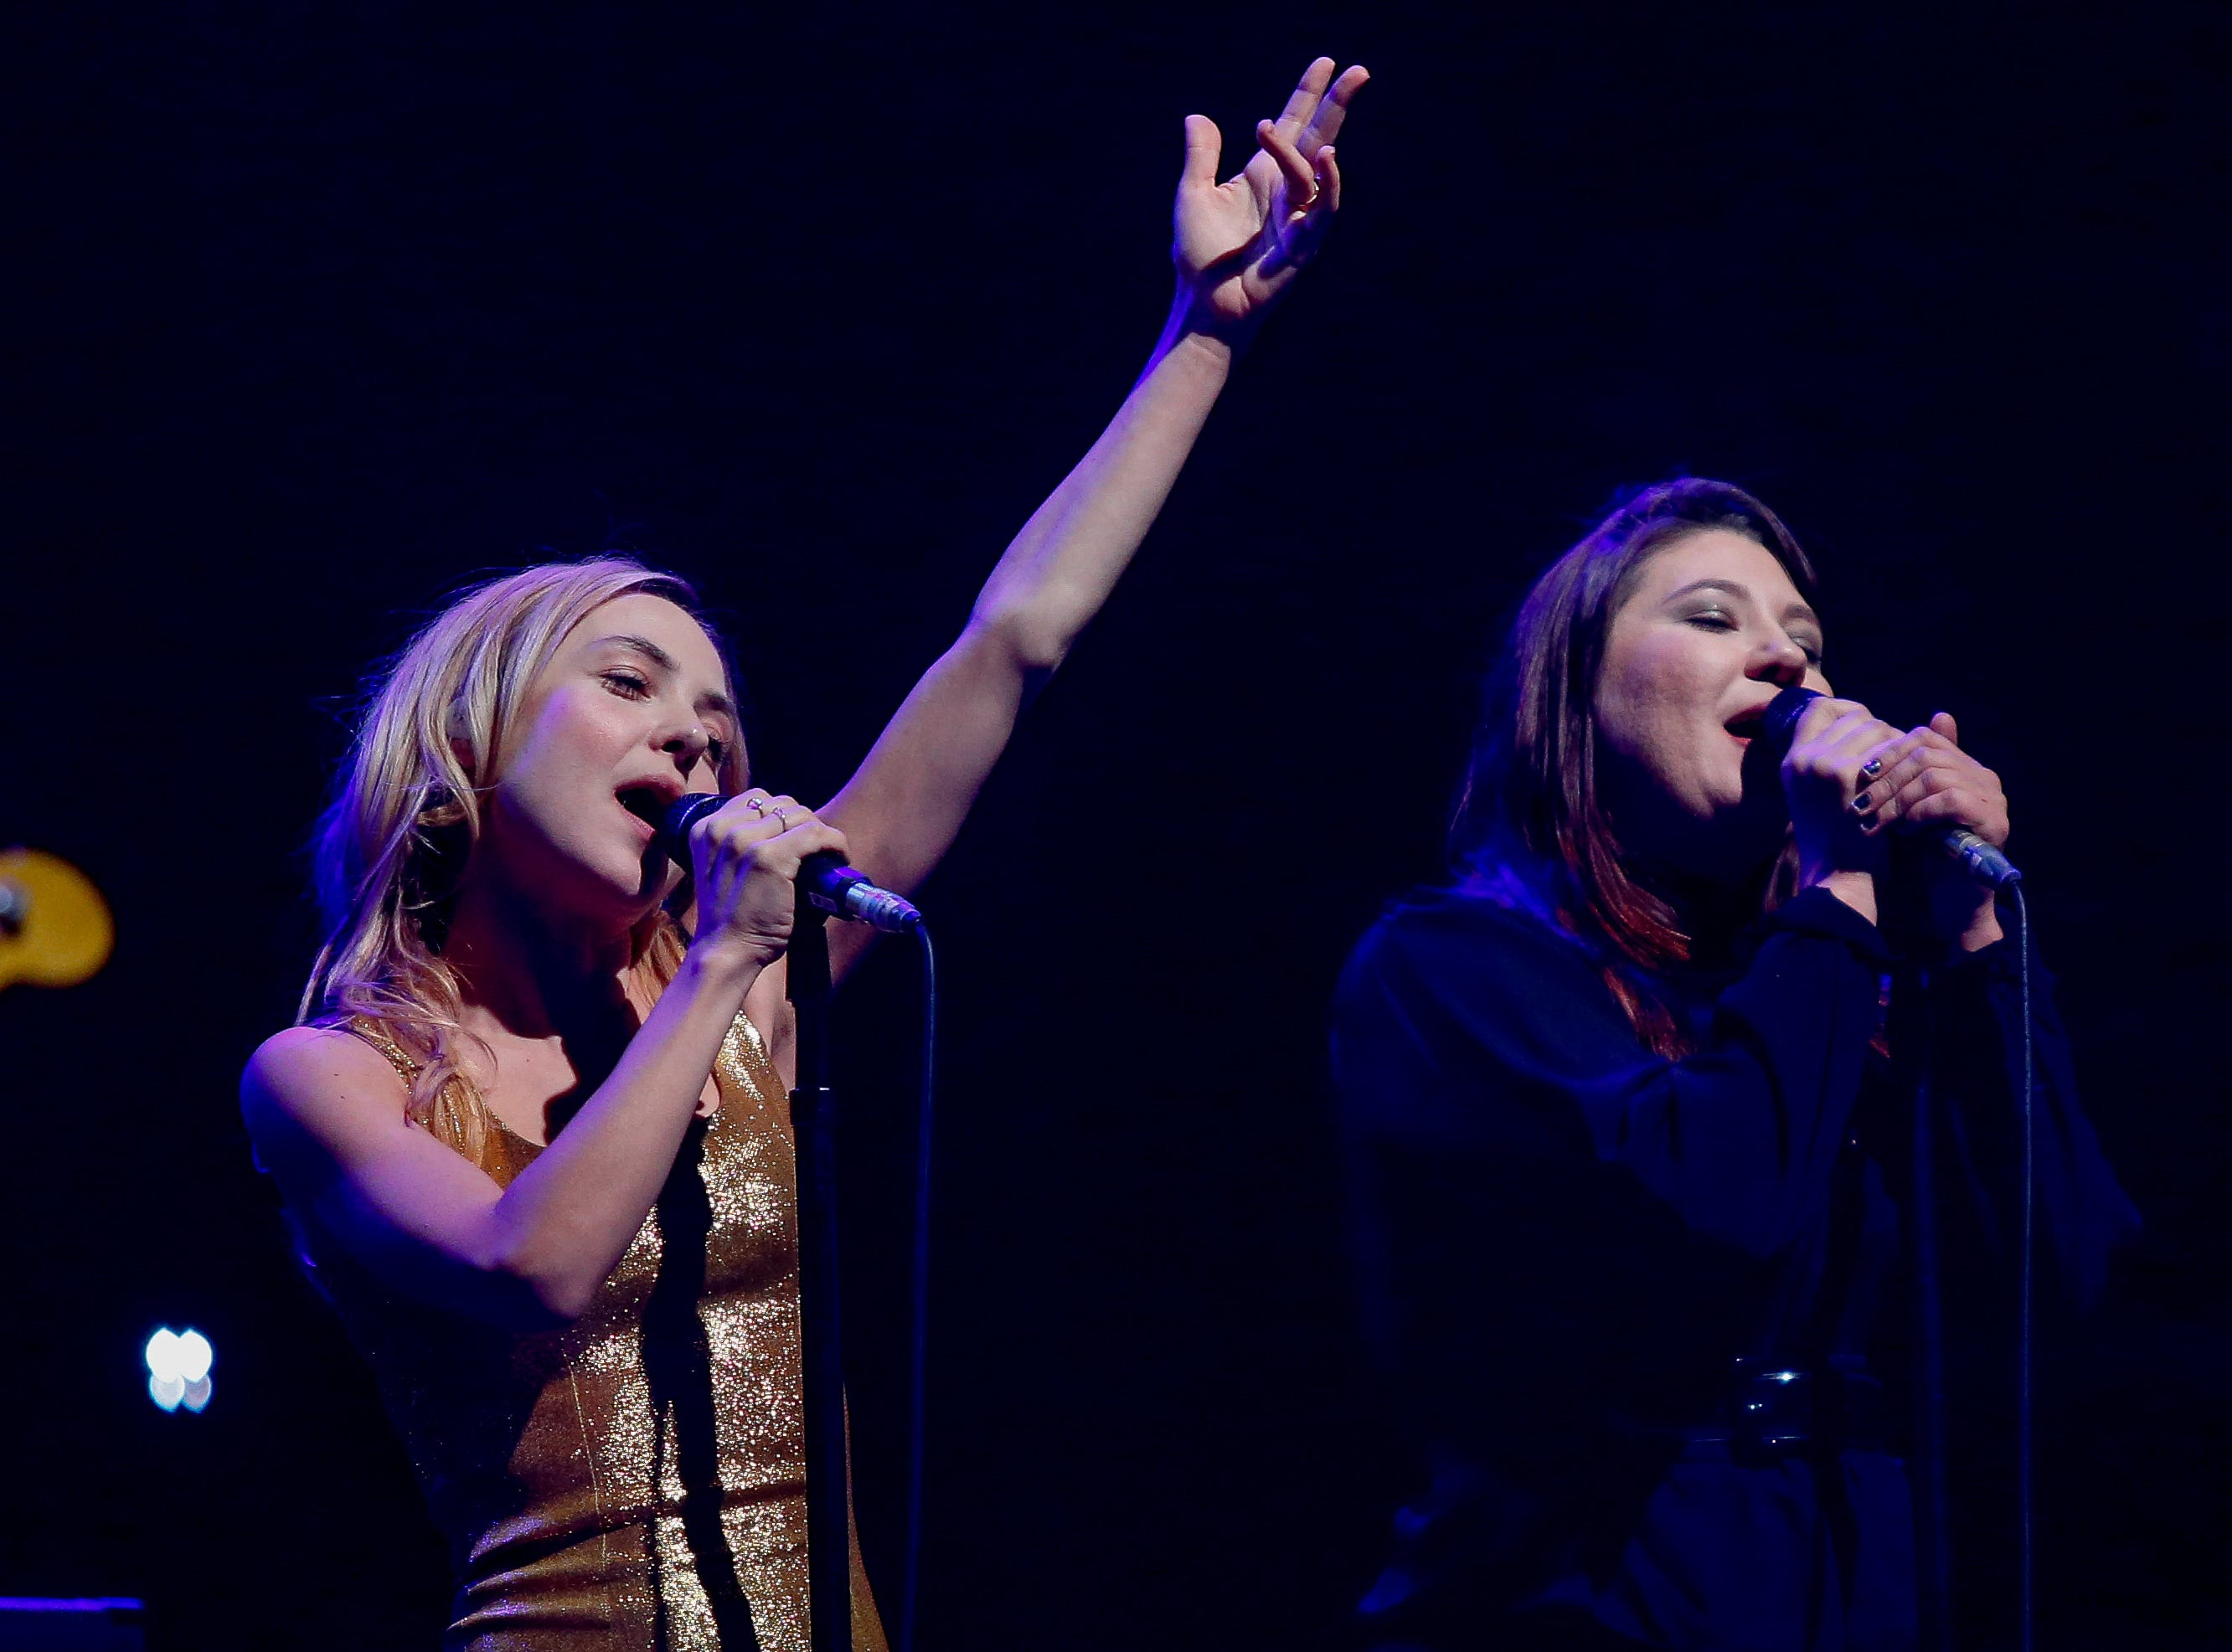 Samantha Sidley and Laura Mace sing backup vocals for the Foo Fighters.